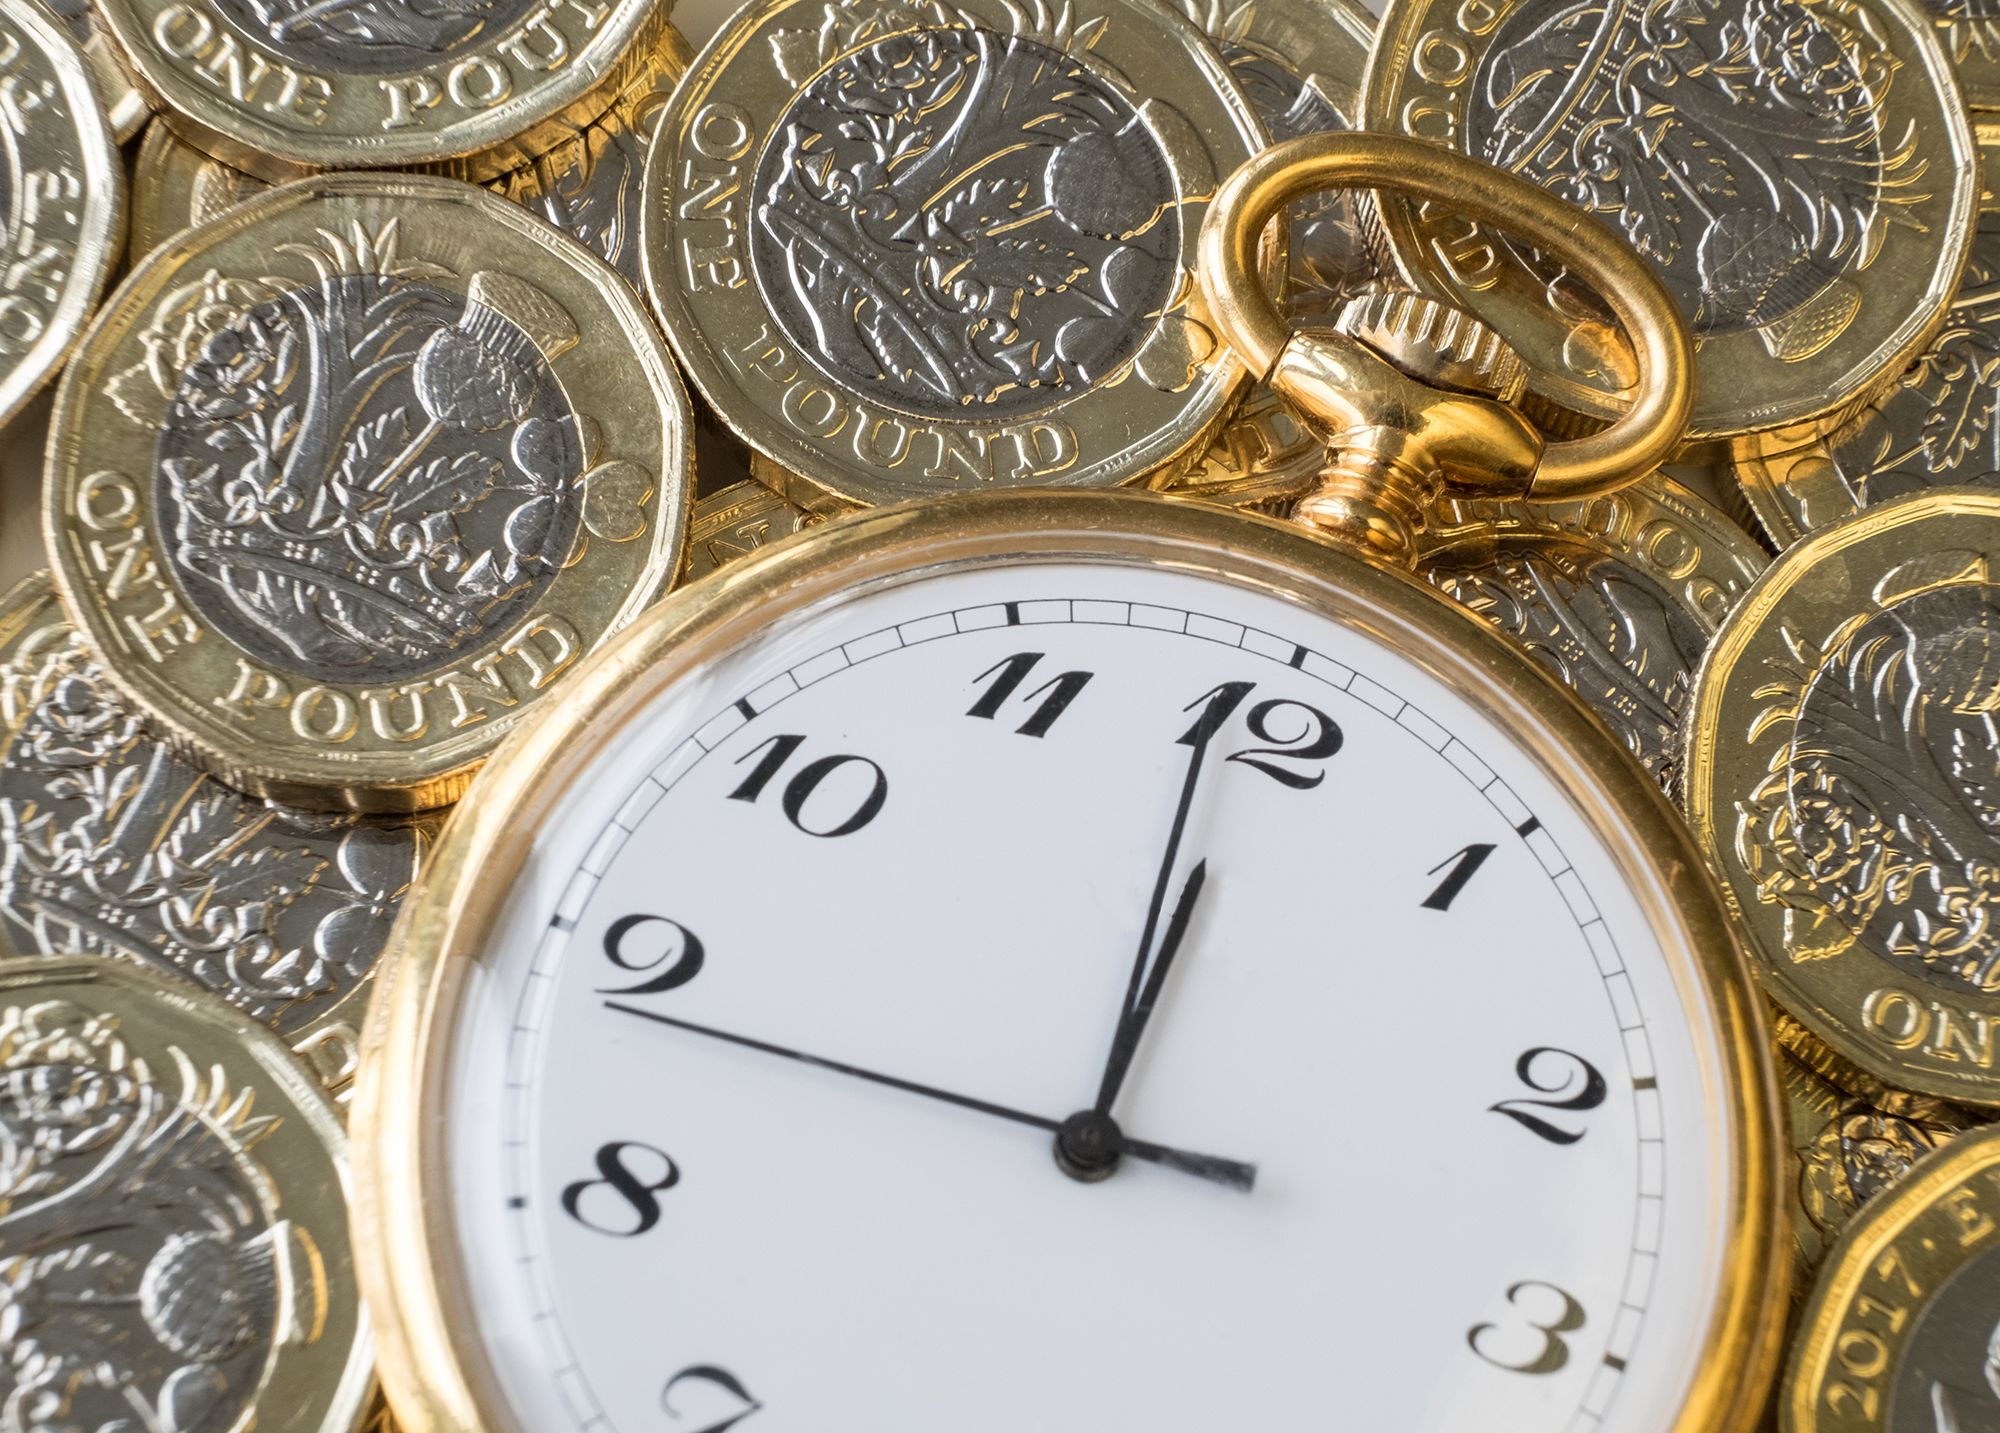 Gold watch surrounded by pound coins. (Image: Shutterstock)